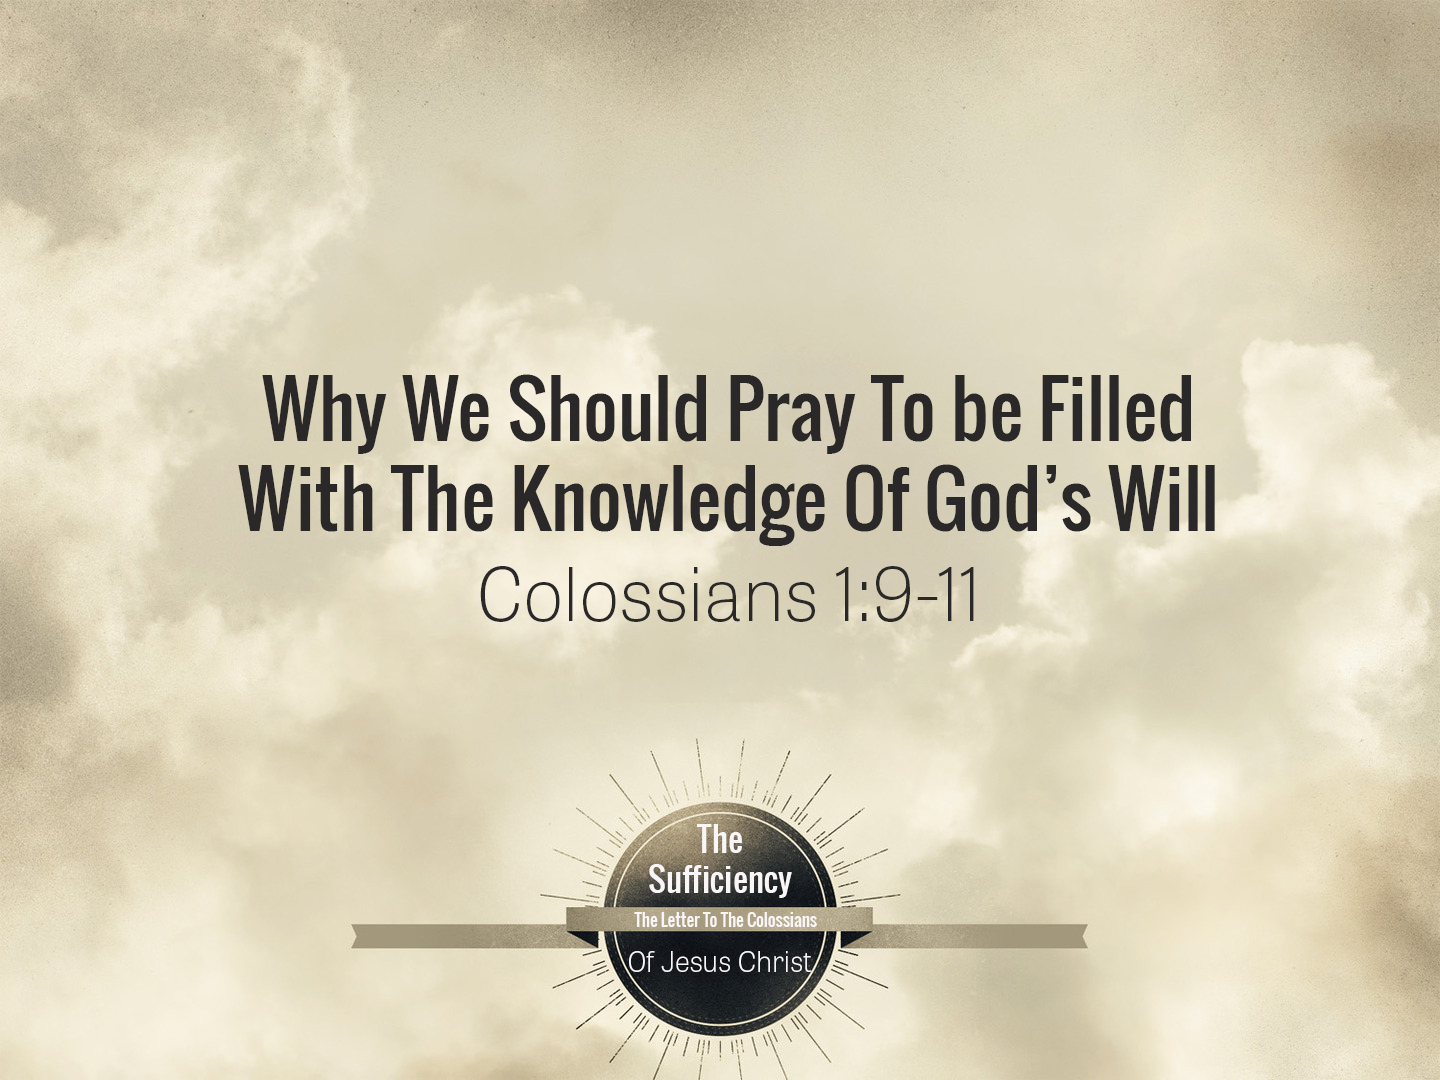 Colossians 1v9 Why We Should Pray To Be Filled With The Knowledge Of God's Will